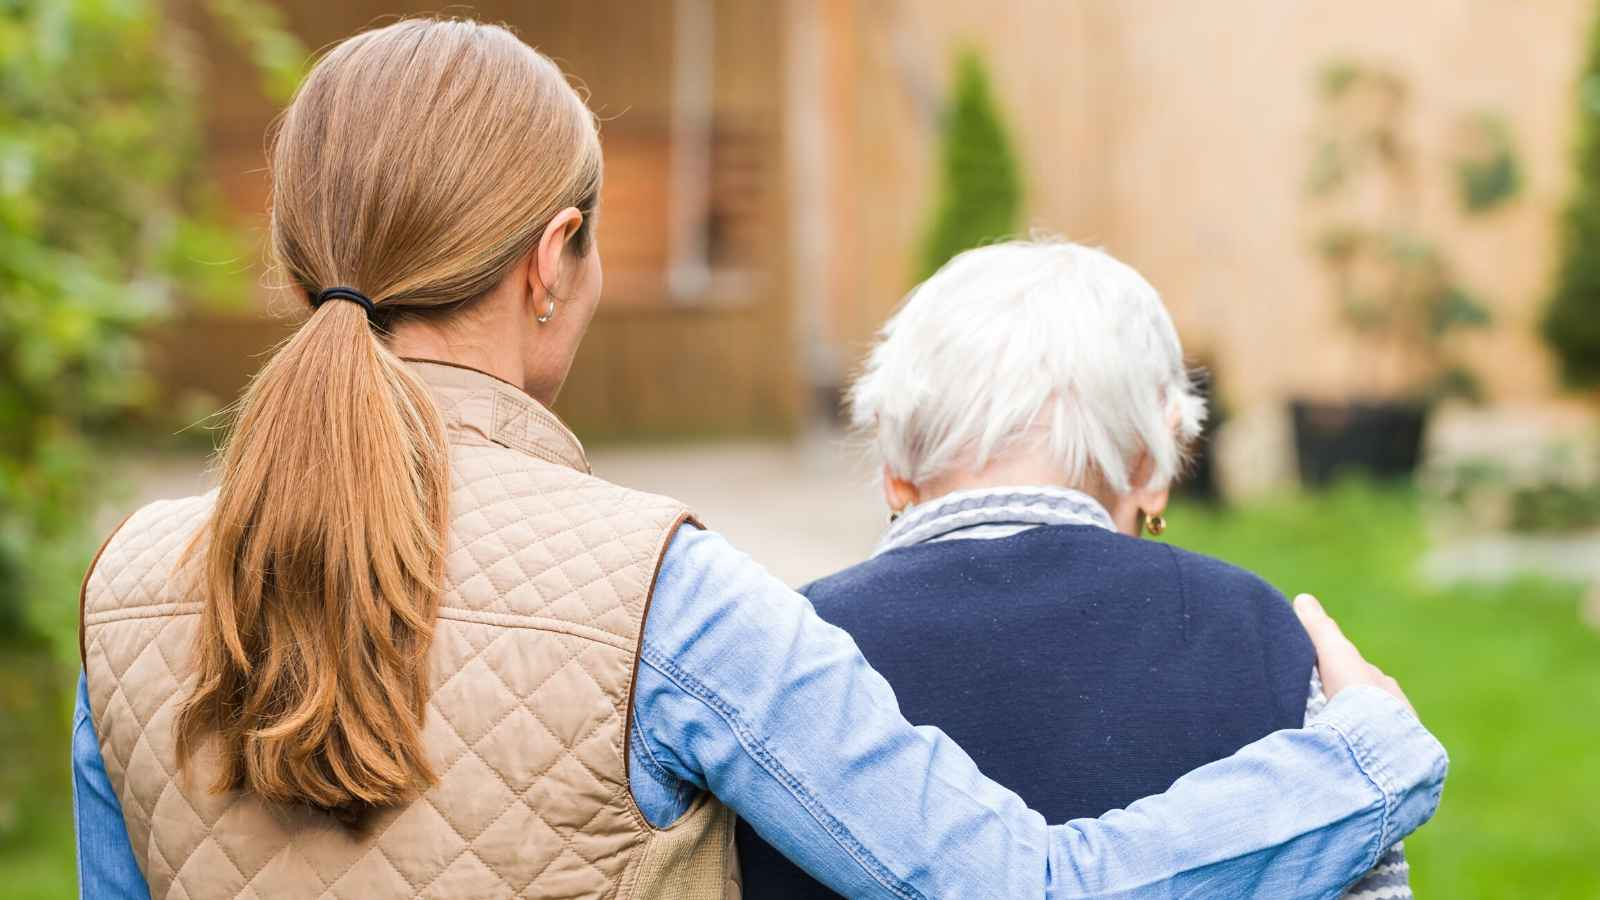 Don't Let Diminished Financial Capacity Put Your Elderly Loved Ones At Risk